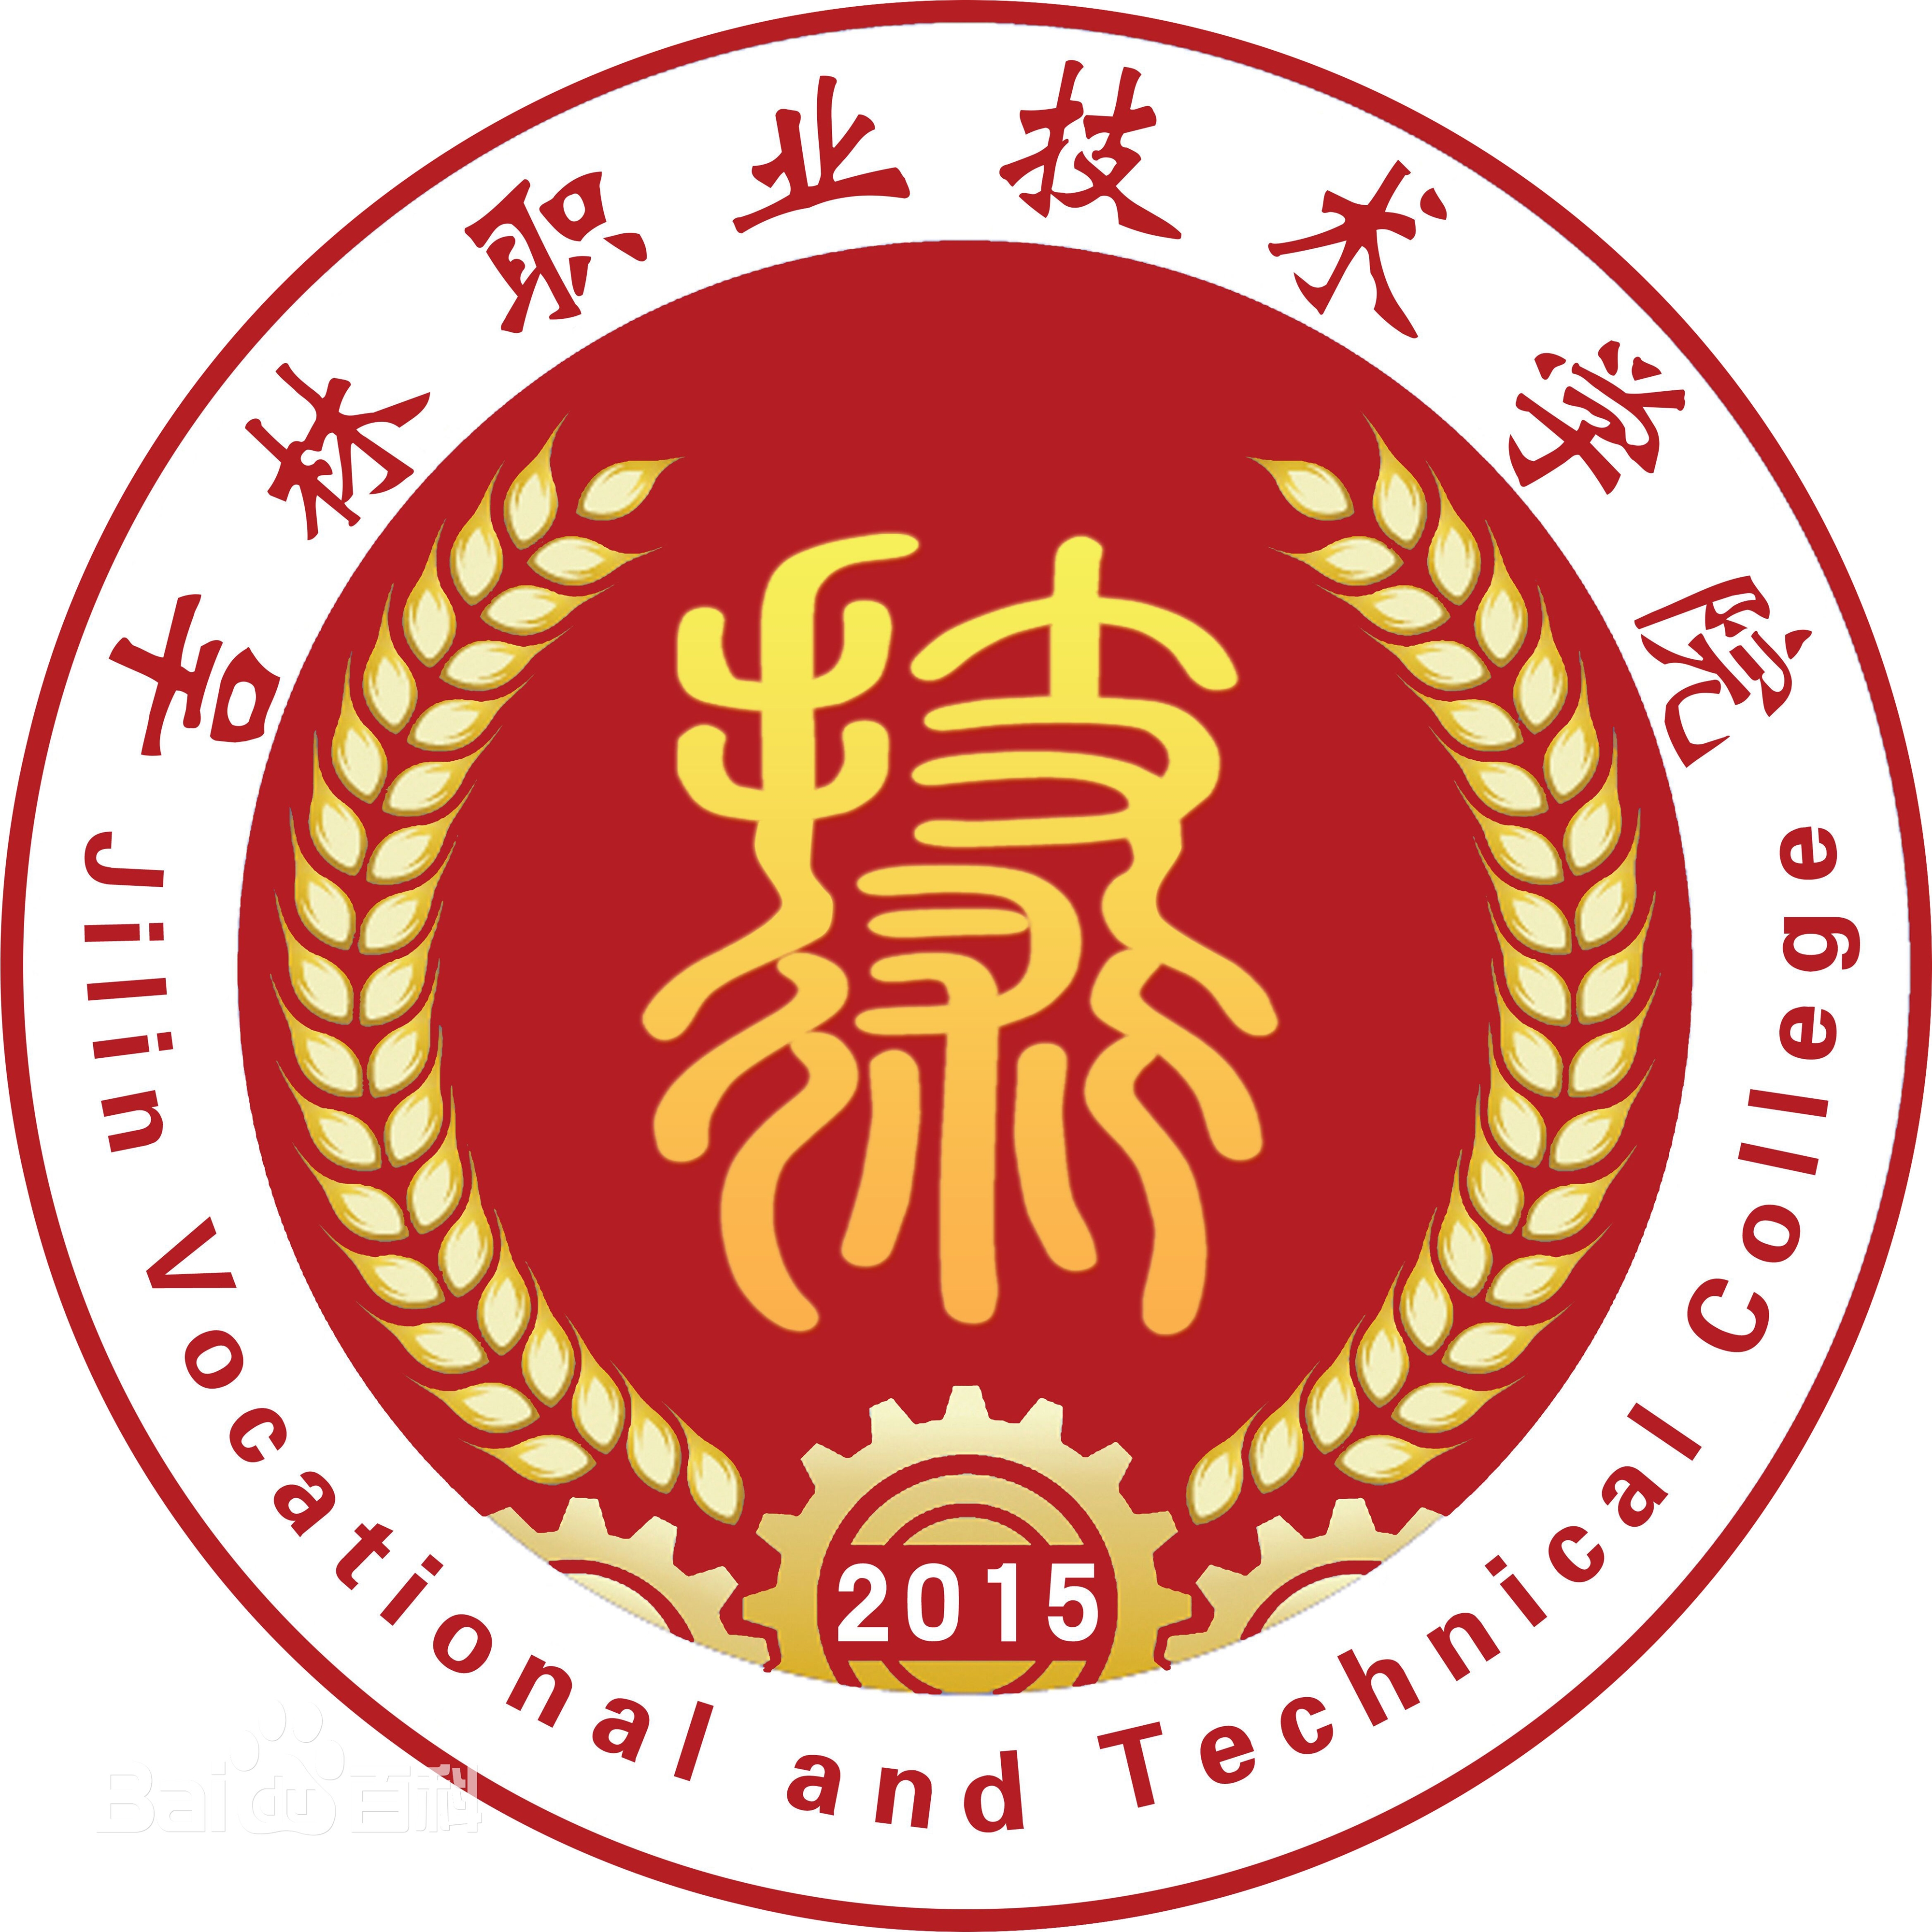 Jilin Vocational and Technical College